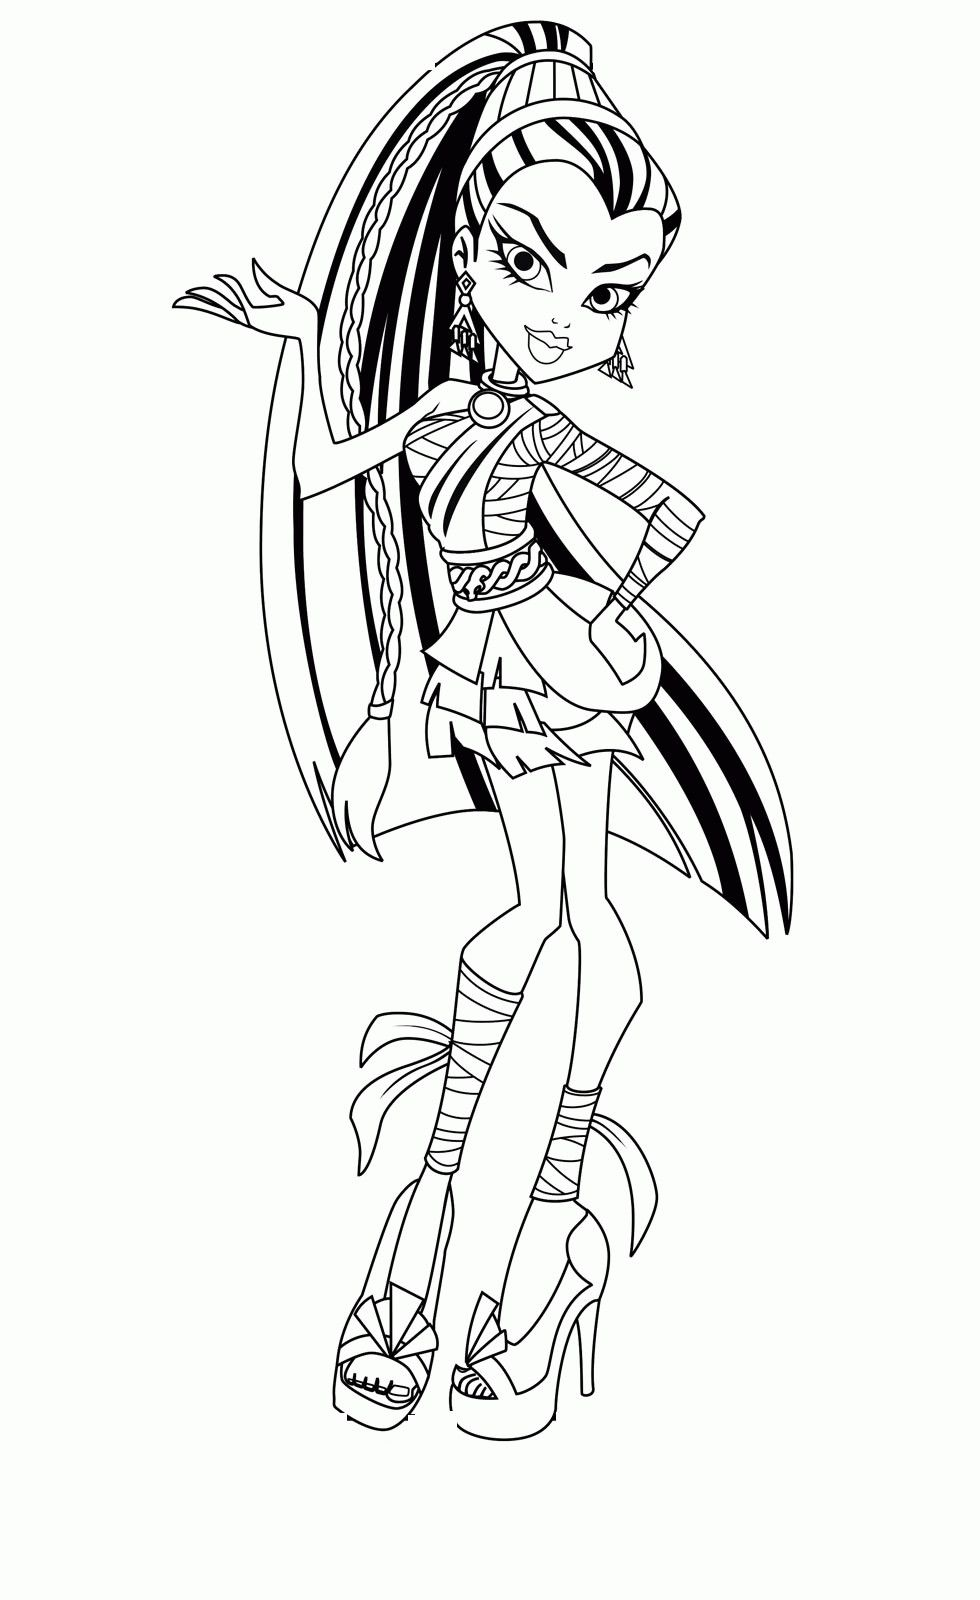 Monster High Coloring Pages Inspirational Monster High Coloring Pages Pdf Coloring Monster Coloring Pages Coloring Pages For Teenagers Coloring Pages For Kids